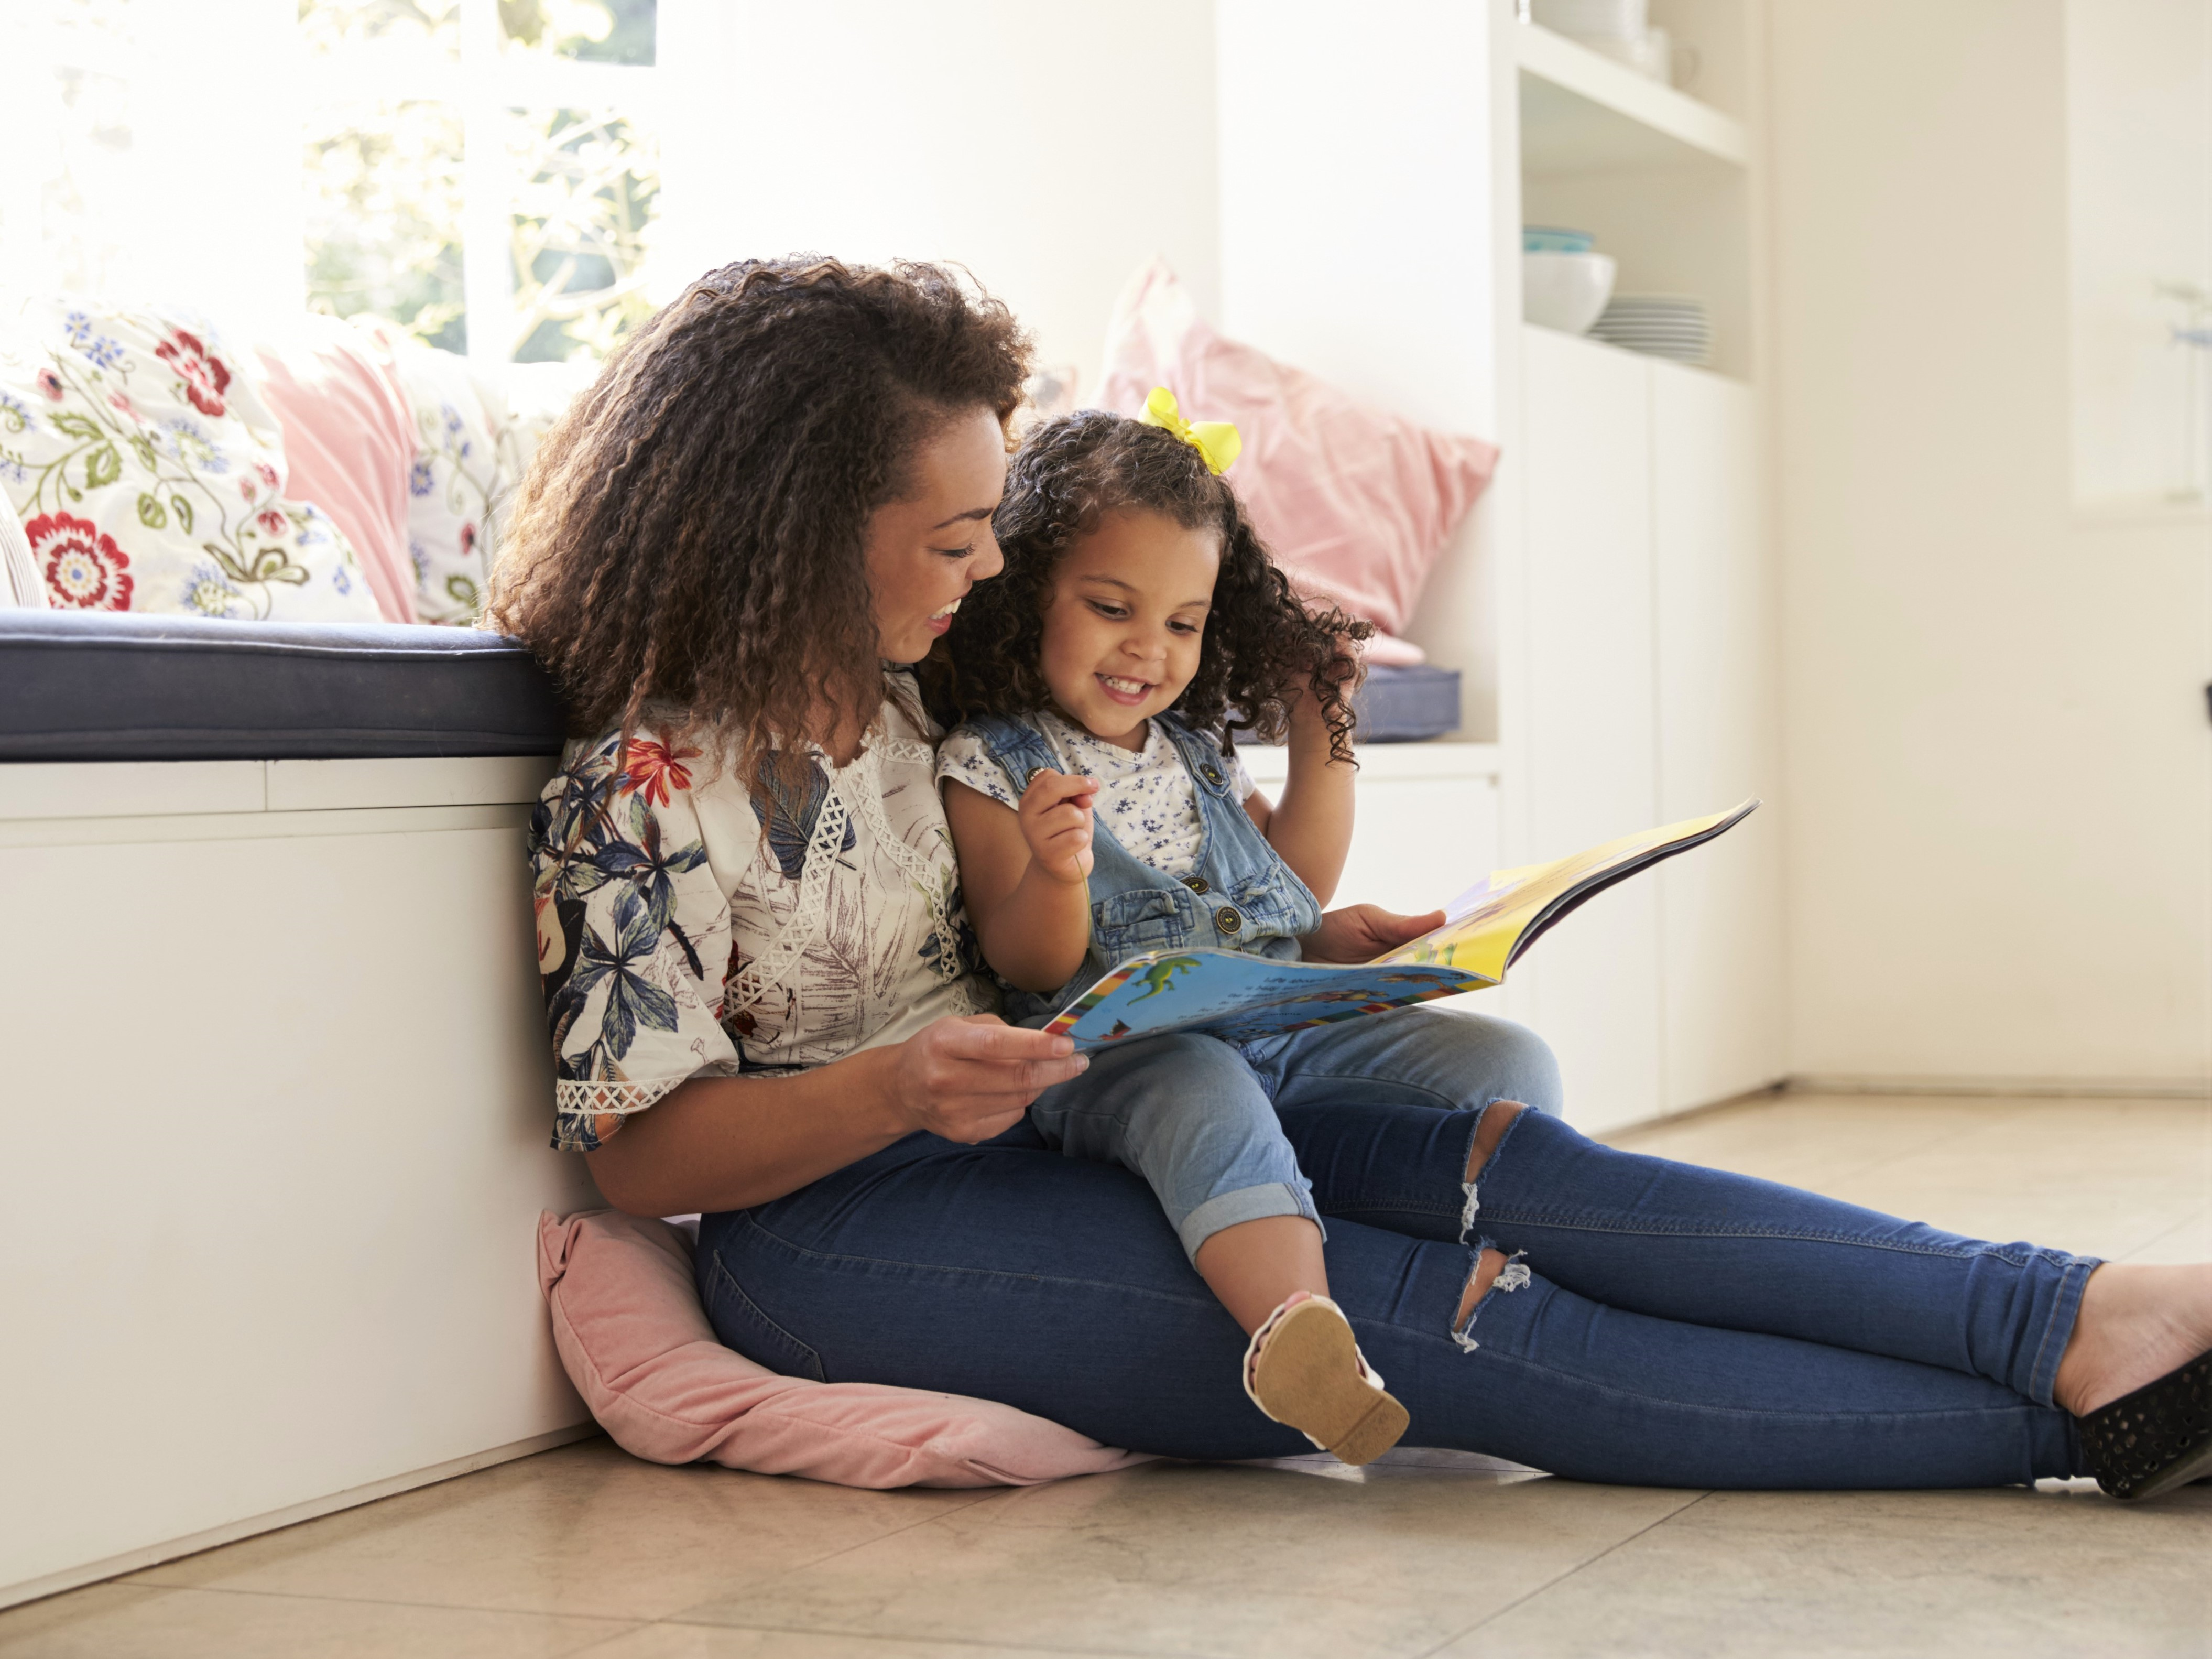 Mother and Daughter Reading Book Sitting on Floor